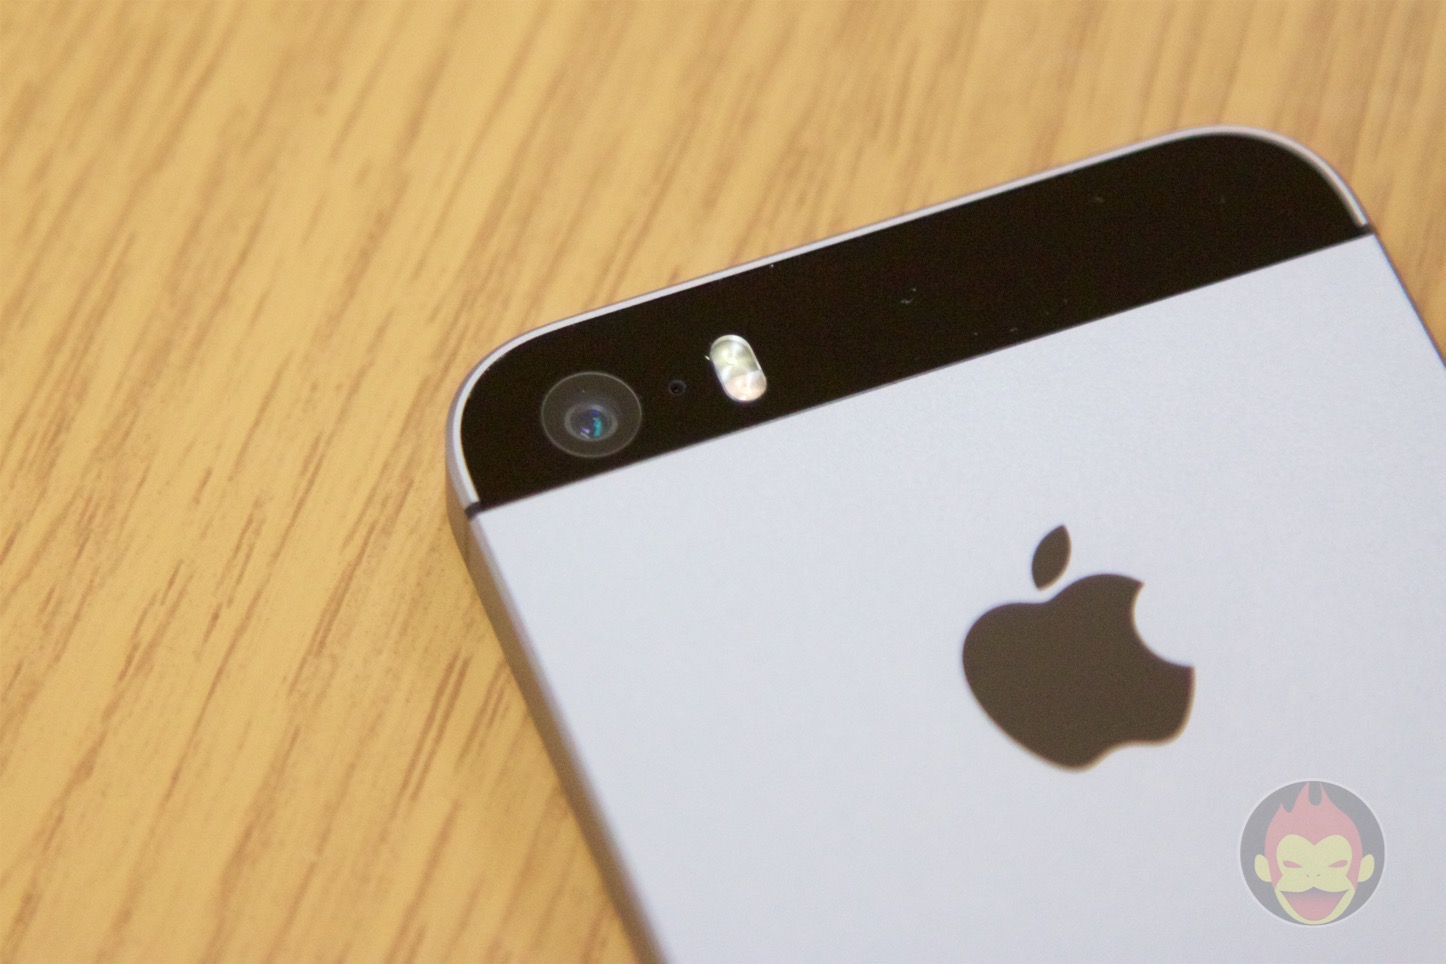 iPhone-SE-Space-Gray-64GB-Photo-Review-16.jpg